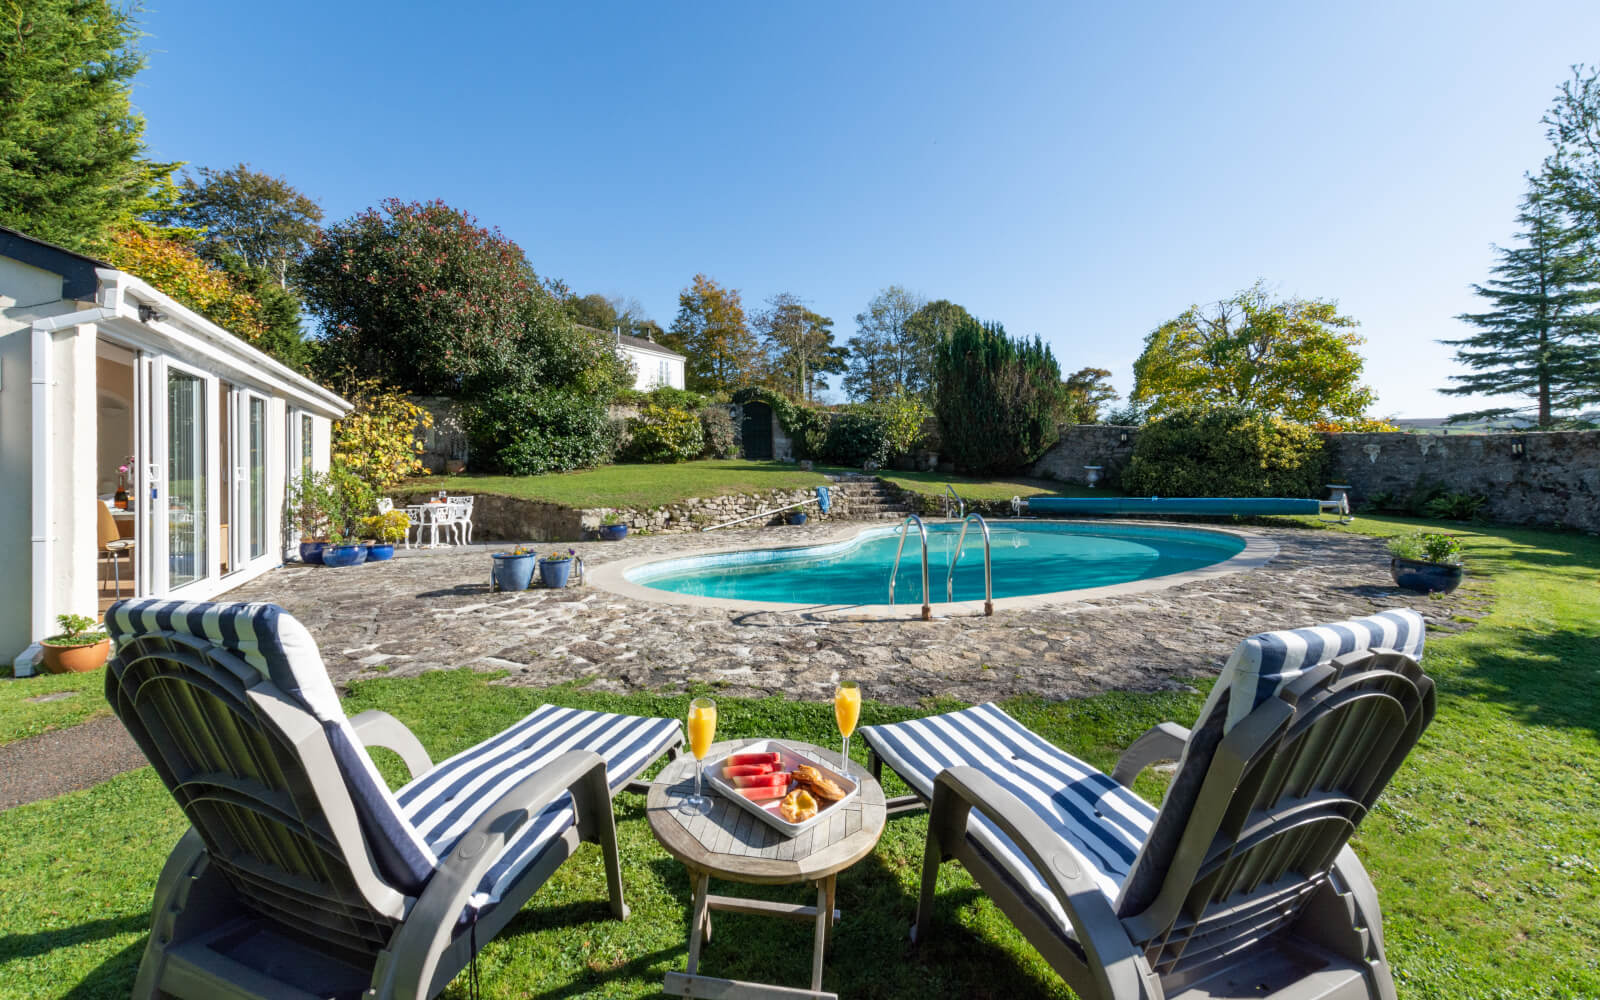 Holiday Cottages With Swimming Pools In Scotland To Rent - Save up to 60%